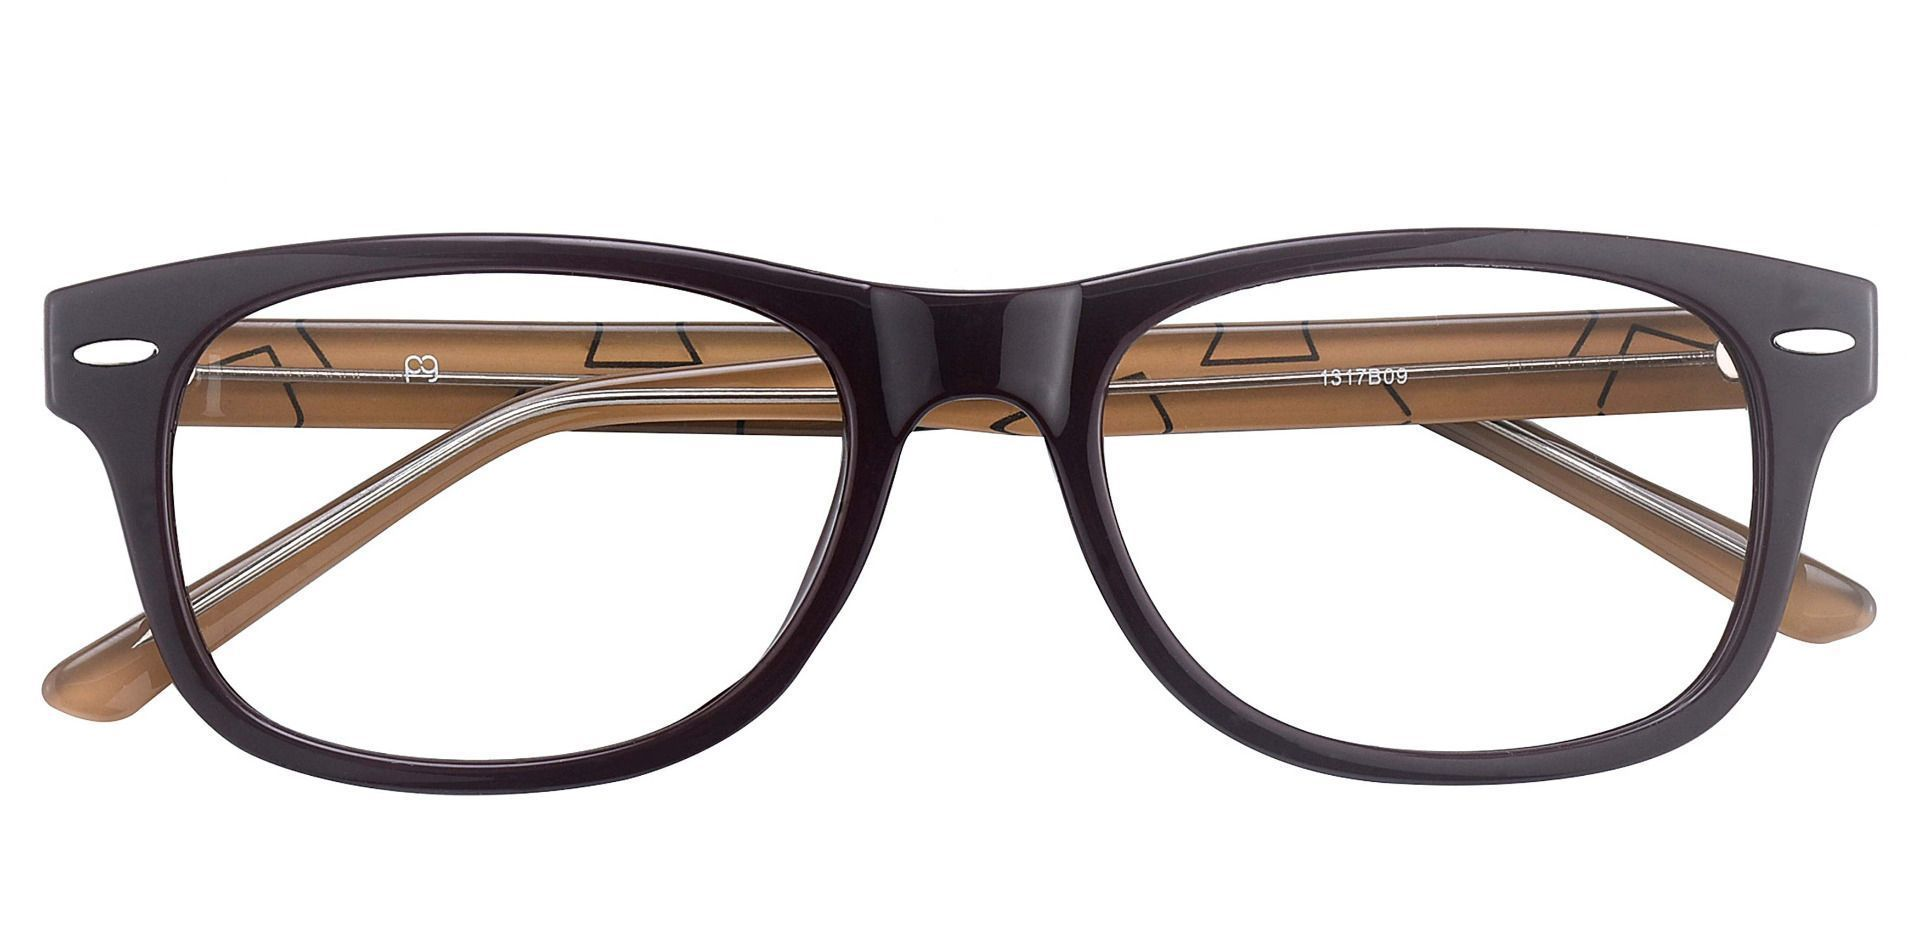 Milton Classic Square Lined Bifocal Glasses - The Frame Is Black And Brown